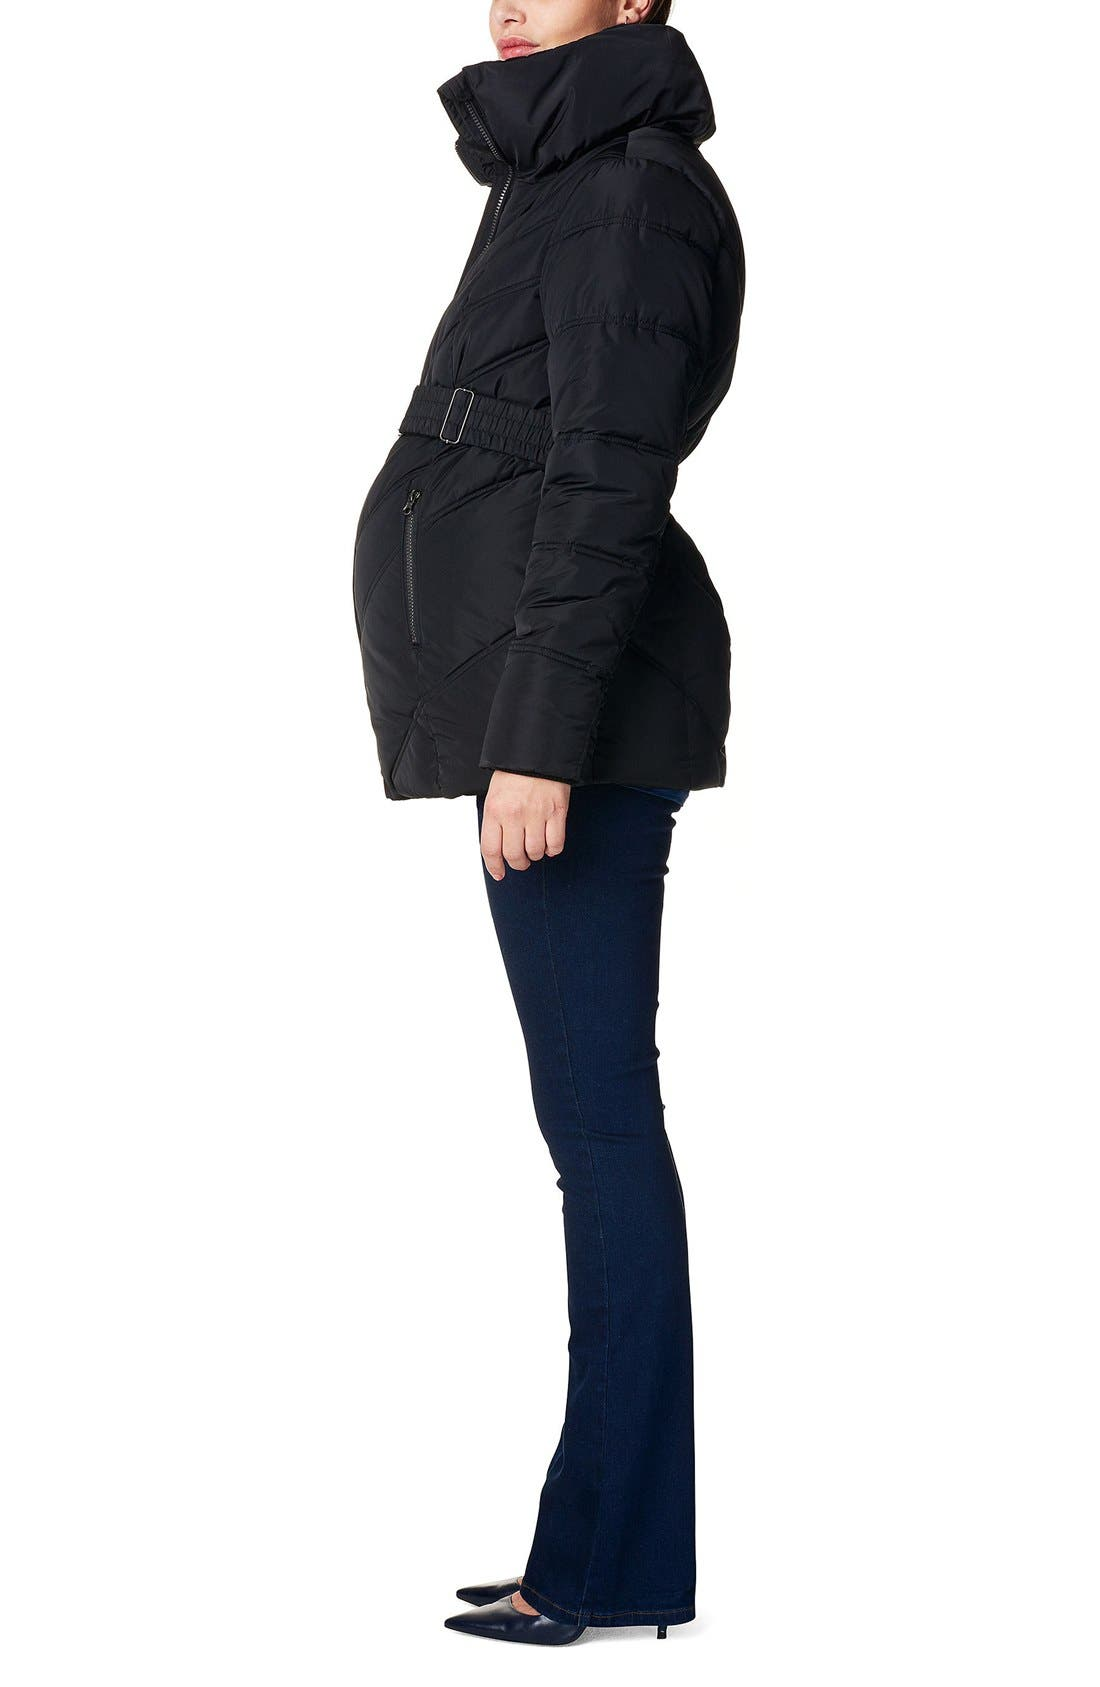 NOPPIES, 'Lene' Quilted Maternity Jacket, Alternate thumbnail 3, color, BLACK